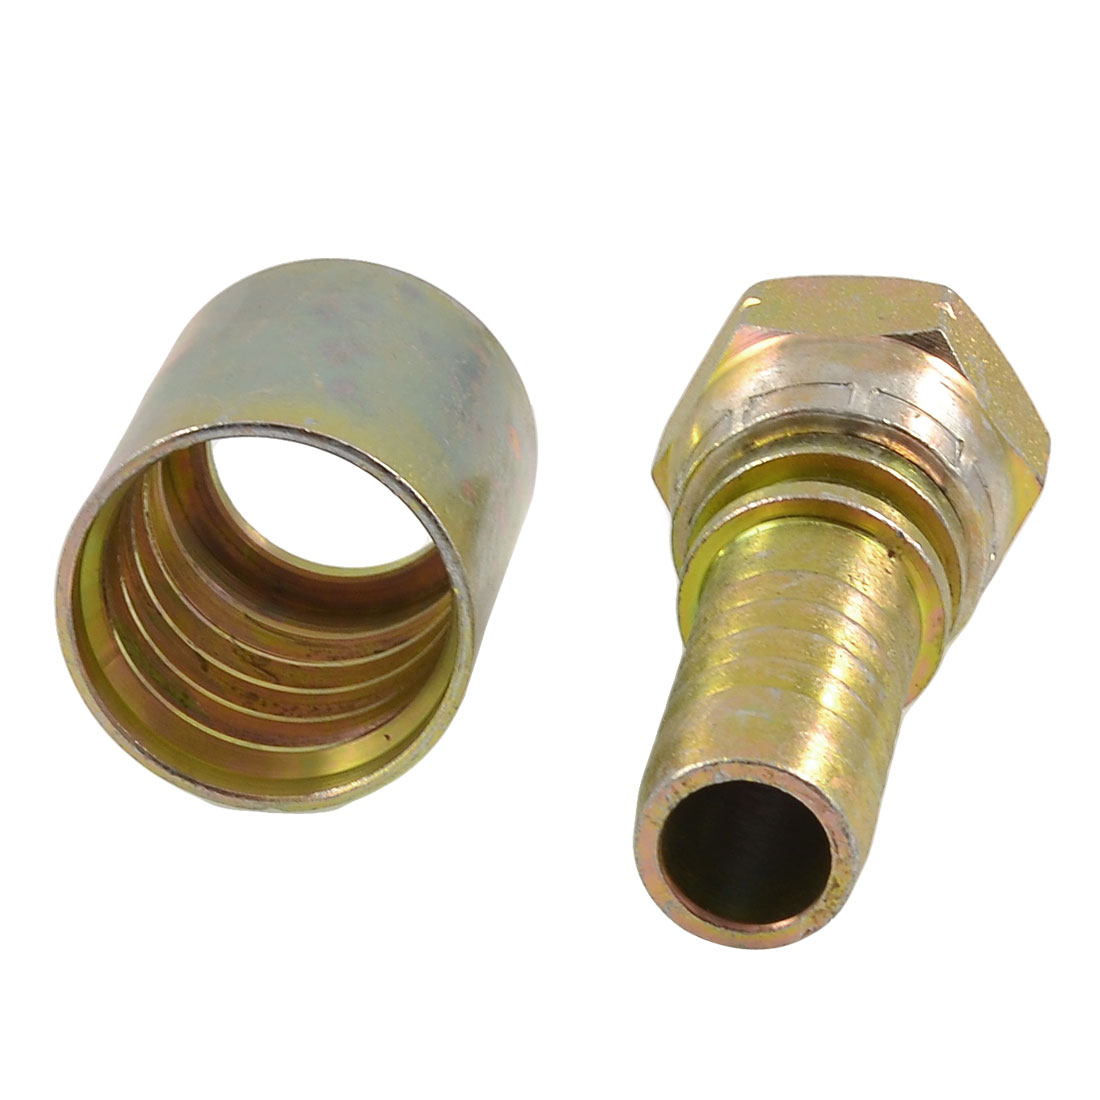 "Hex Bushing 3/4"" PT Female Threaded Oil Pipe Connector Barb Hose Coupler"